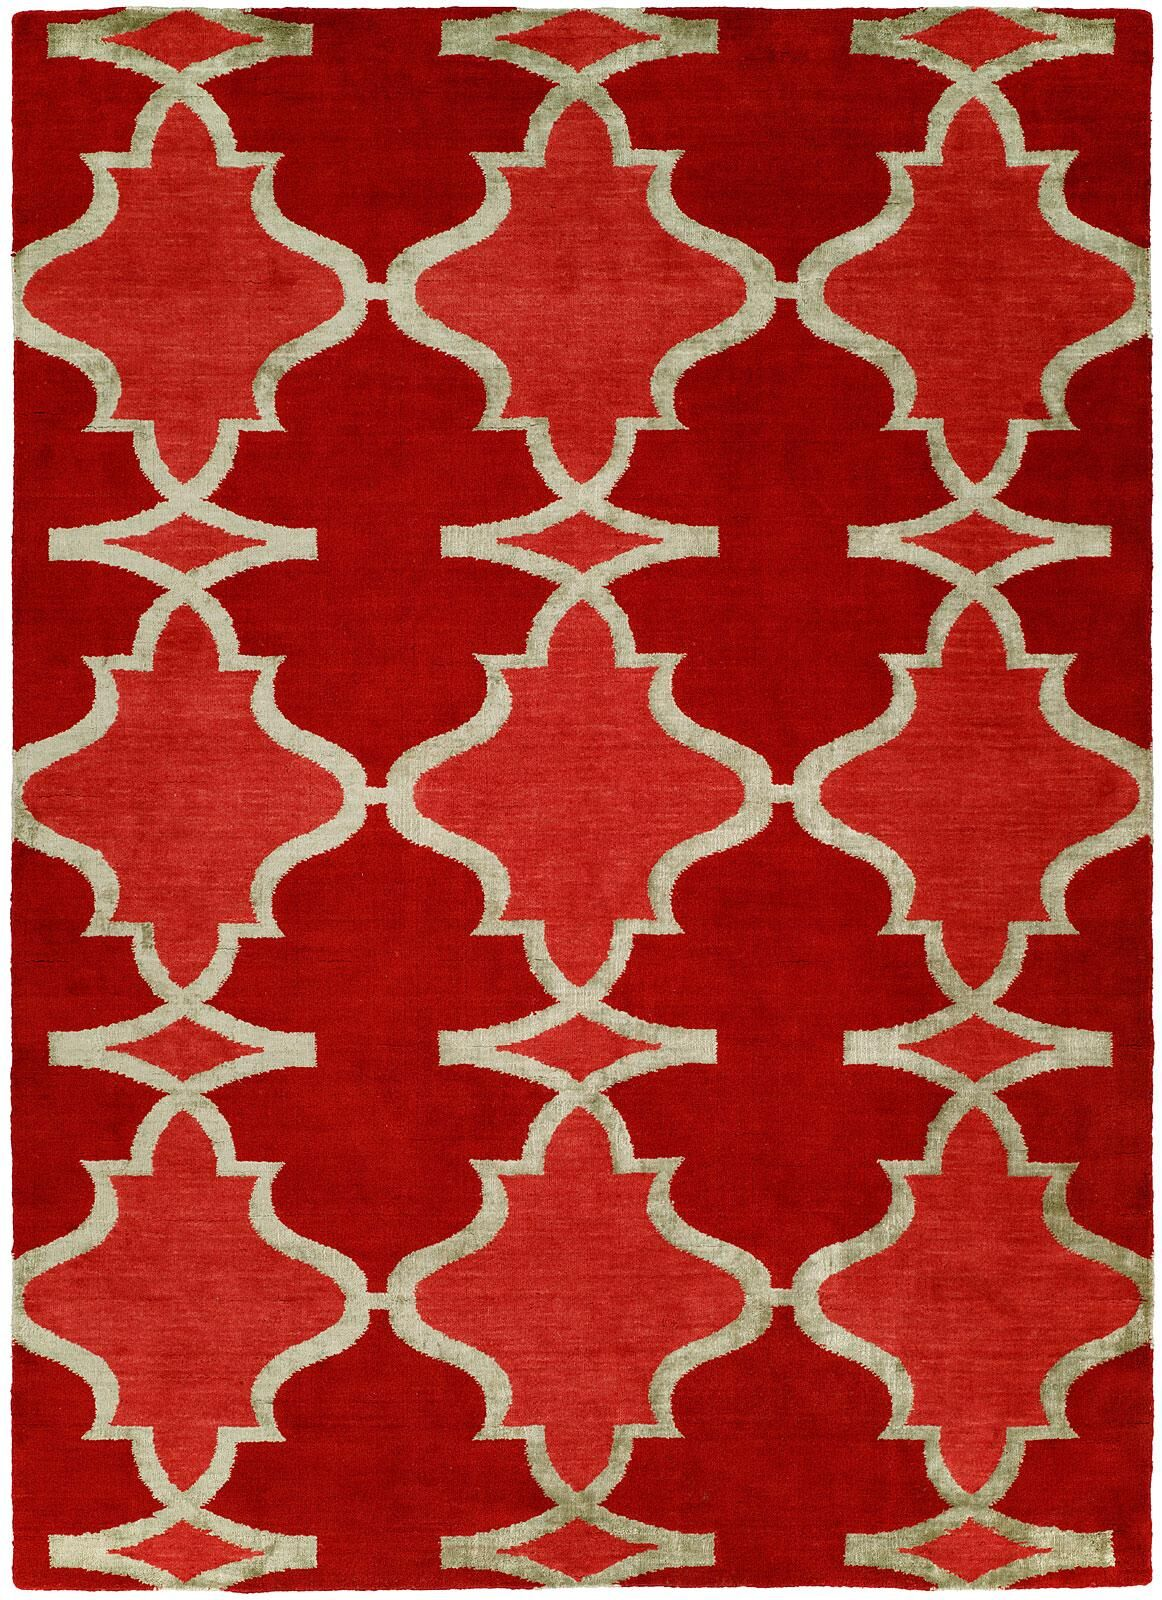 Viraj Hand Knotted Wool Red Area Rug Rug Size: Rectangle 9' x 12'